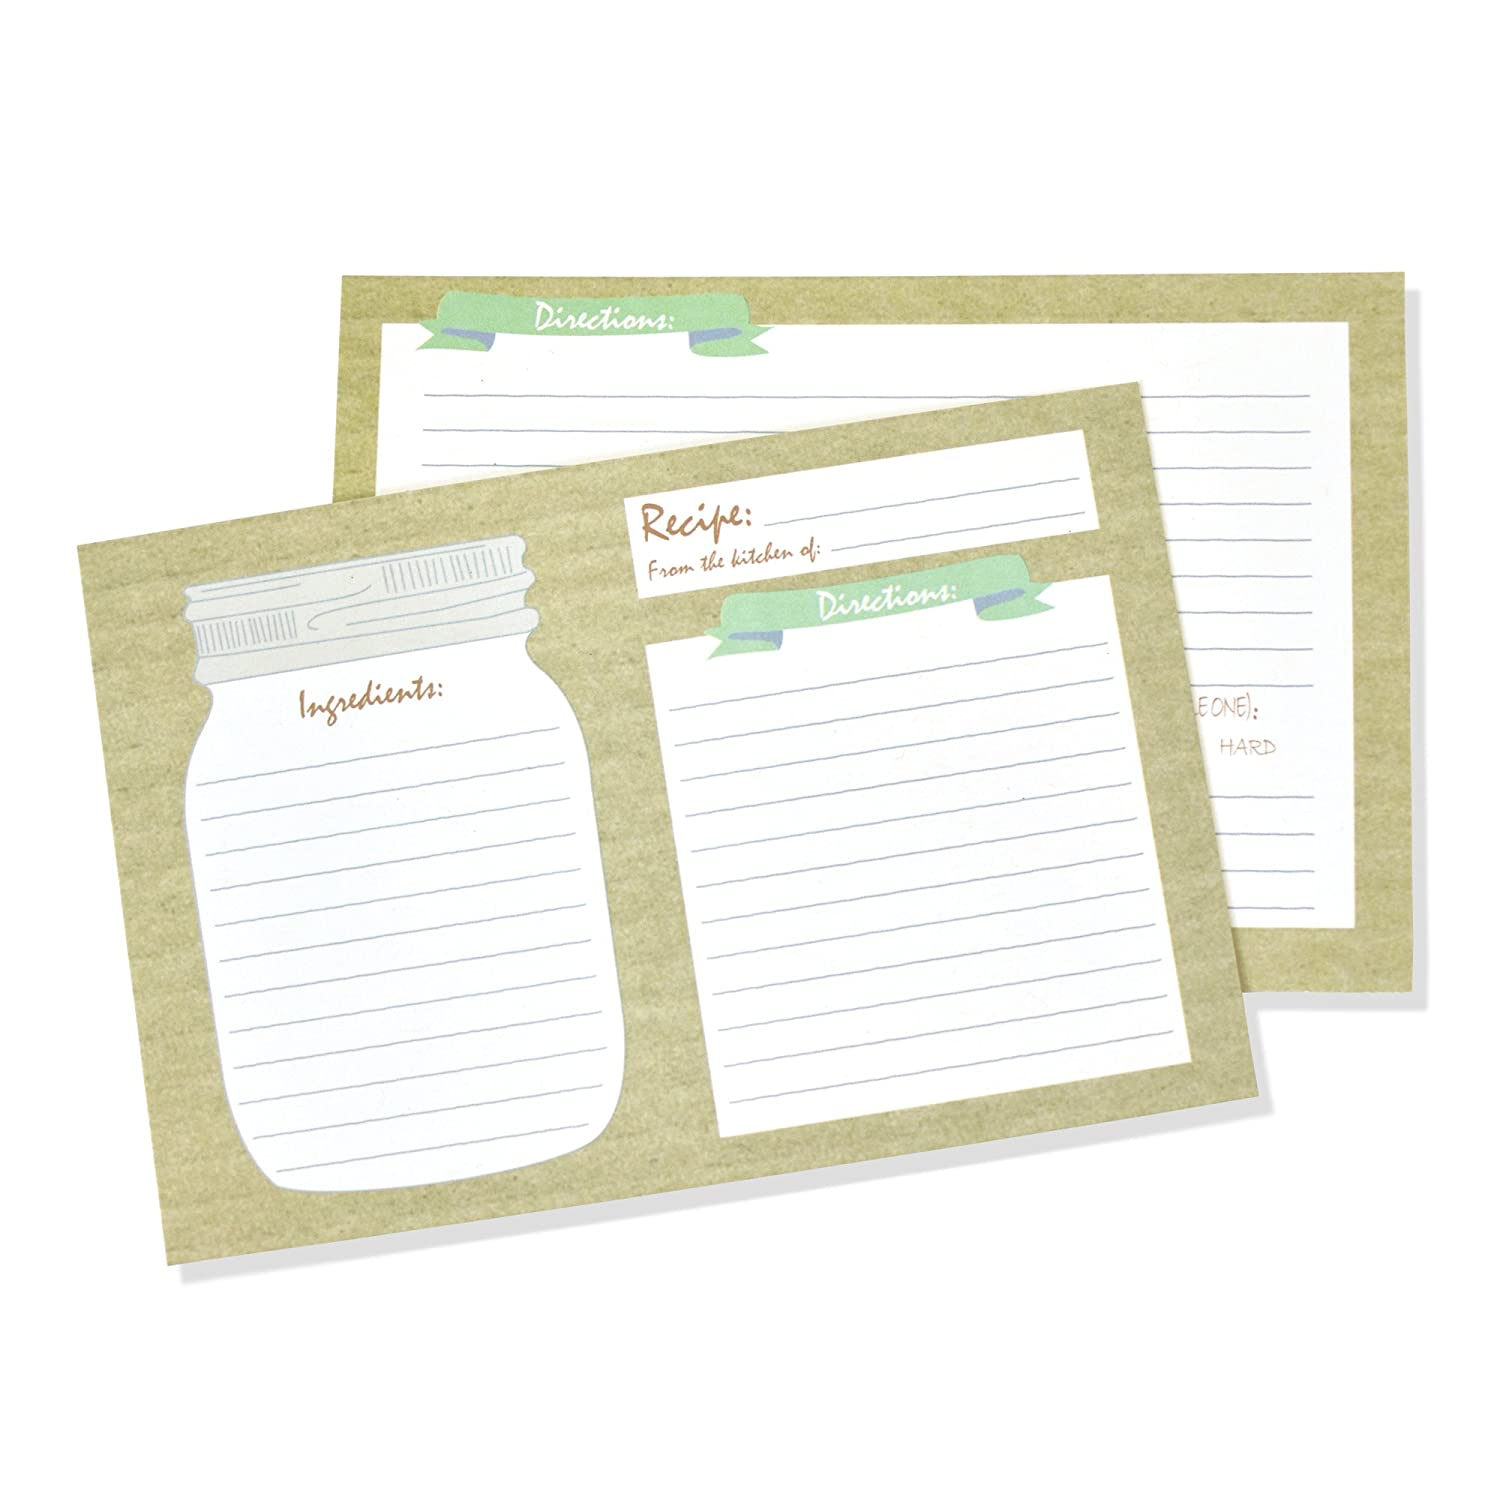 50 Double Sided Thick Mason Jar Recipe Cards Set 4x6 inches Perfect and Easy to Write and Design Cookbook Index Recipes